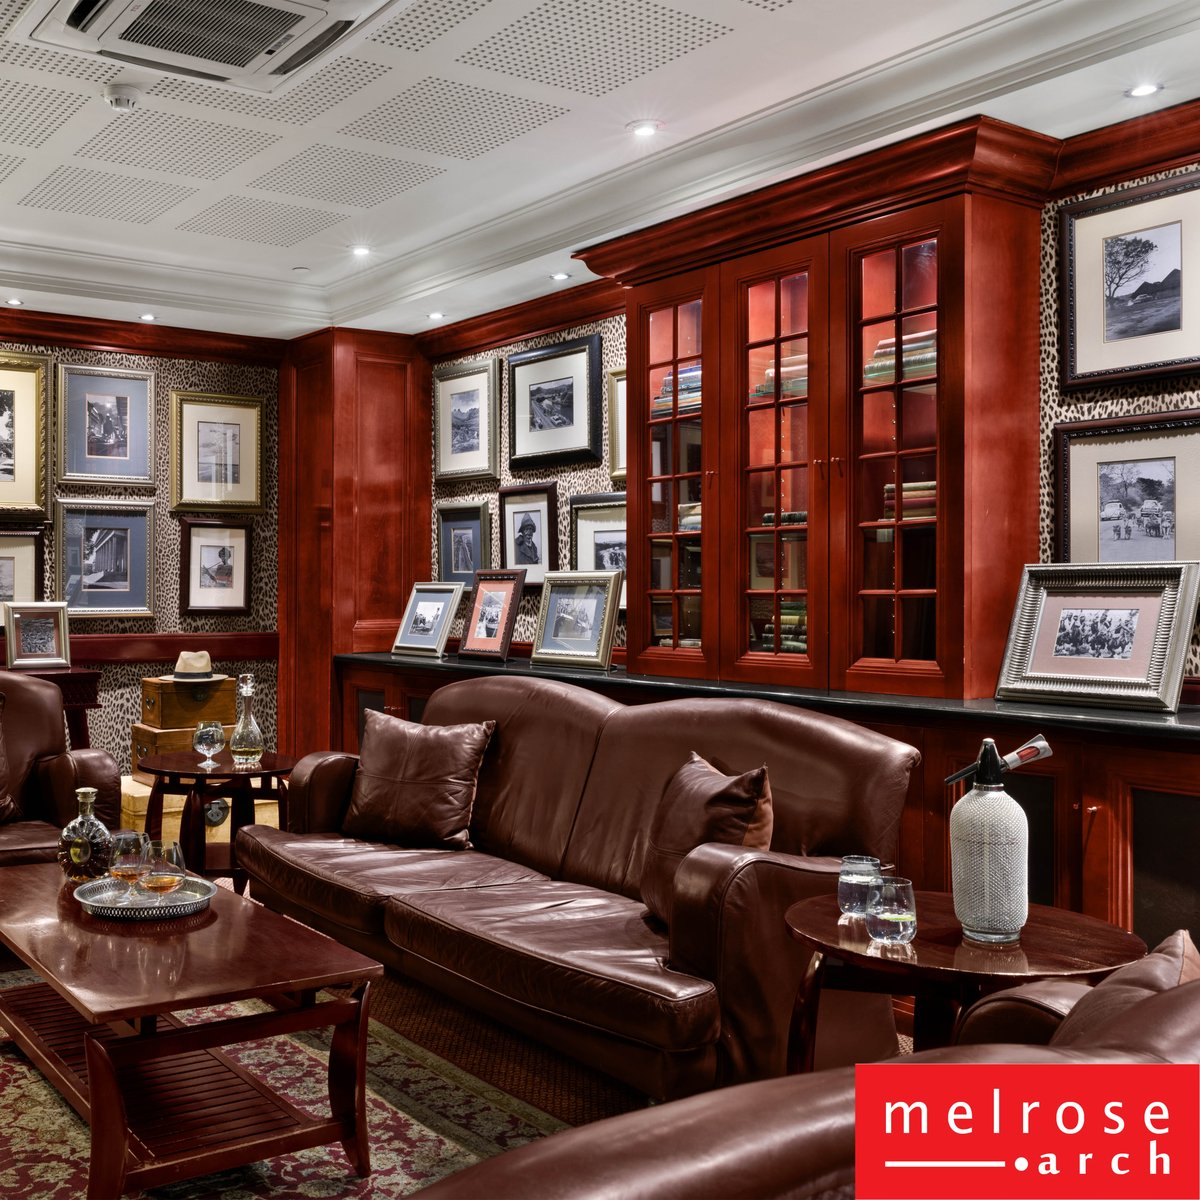 Sit back and relax as you sip fine whiskey at the African Pride Melrose Arch Autograph Collection Library Bar this weekend.  .  #MelroseArch #Live #Work #Play #AfricanPrideMelroseArch #MelroseArchHotel #LibraryBar